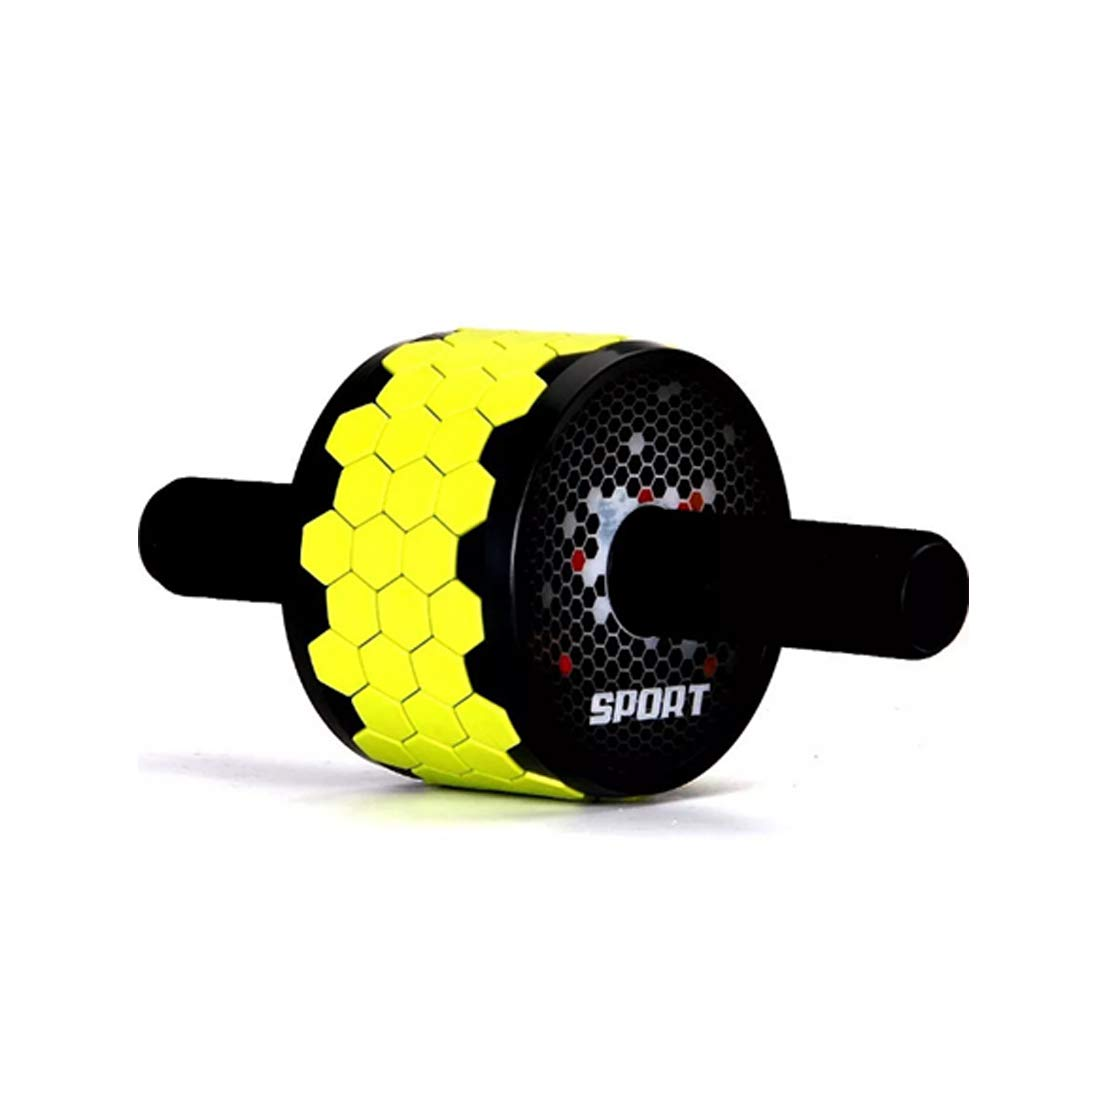 Sugoishop Wheel Roller Kit AB Roller Pro with Push-Up Bar, Jump Rope and Knee Pad Perfect Abdominal Core Carver Fitness Workout (Color : Black and Yellow)